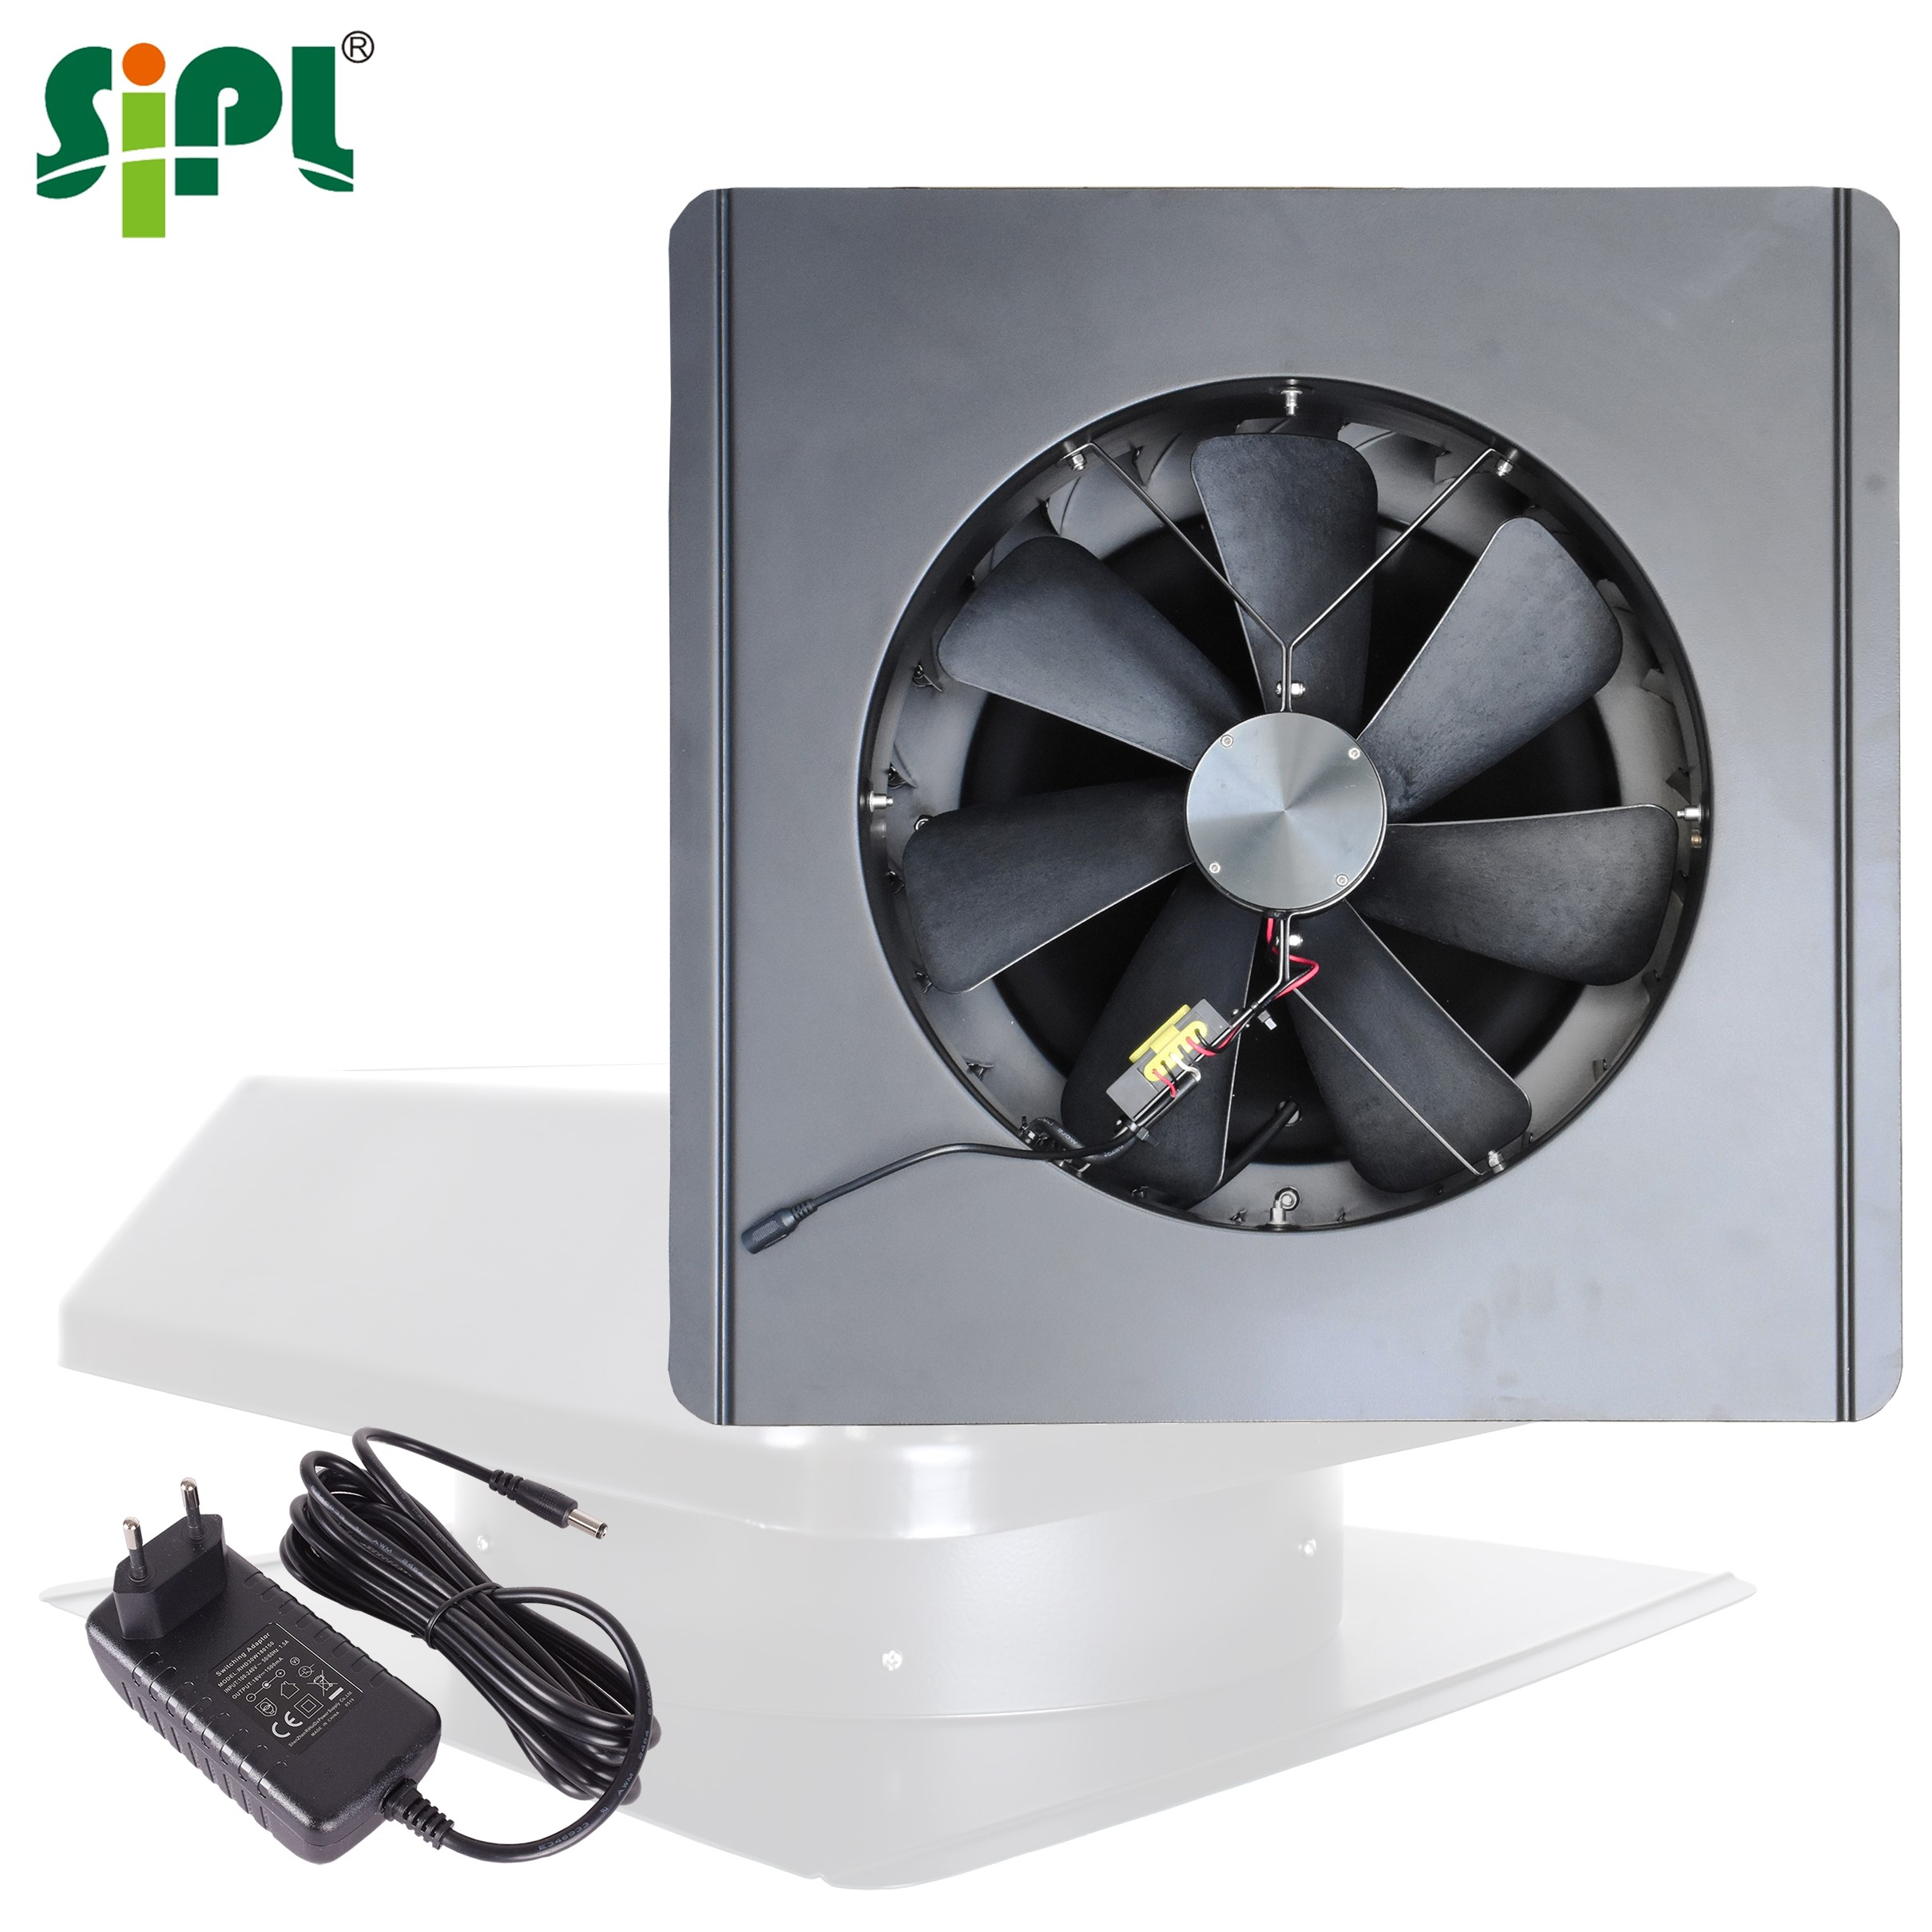 solar attic gable vent tools 24hrs fresh air circulation ventilation heat conditioning roof fan solar ceiling home exhaust fan buy heat exhaust fan ceiling ventilation fan solar air conditioning product on alibaba com